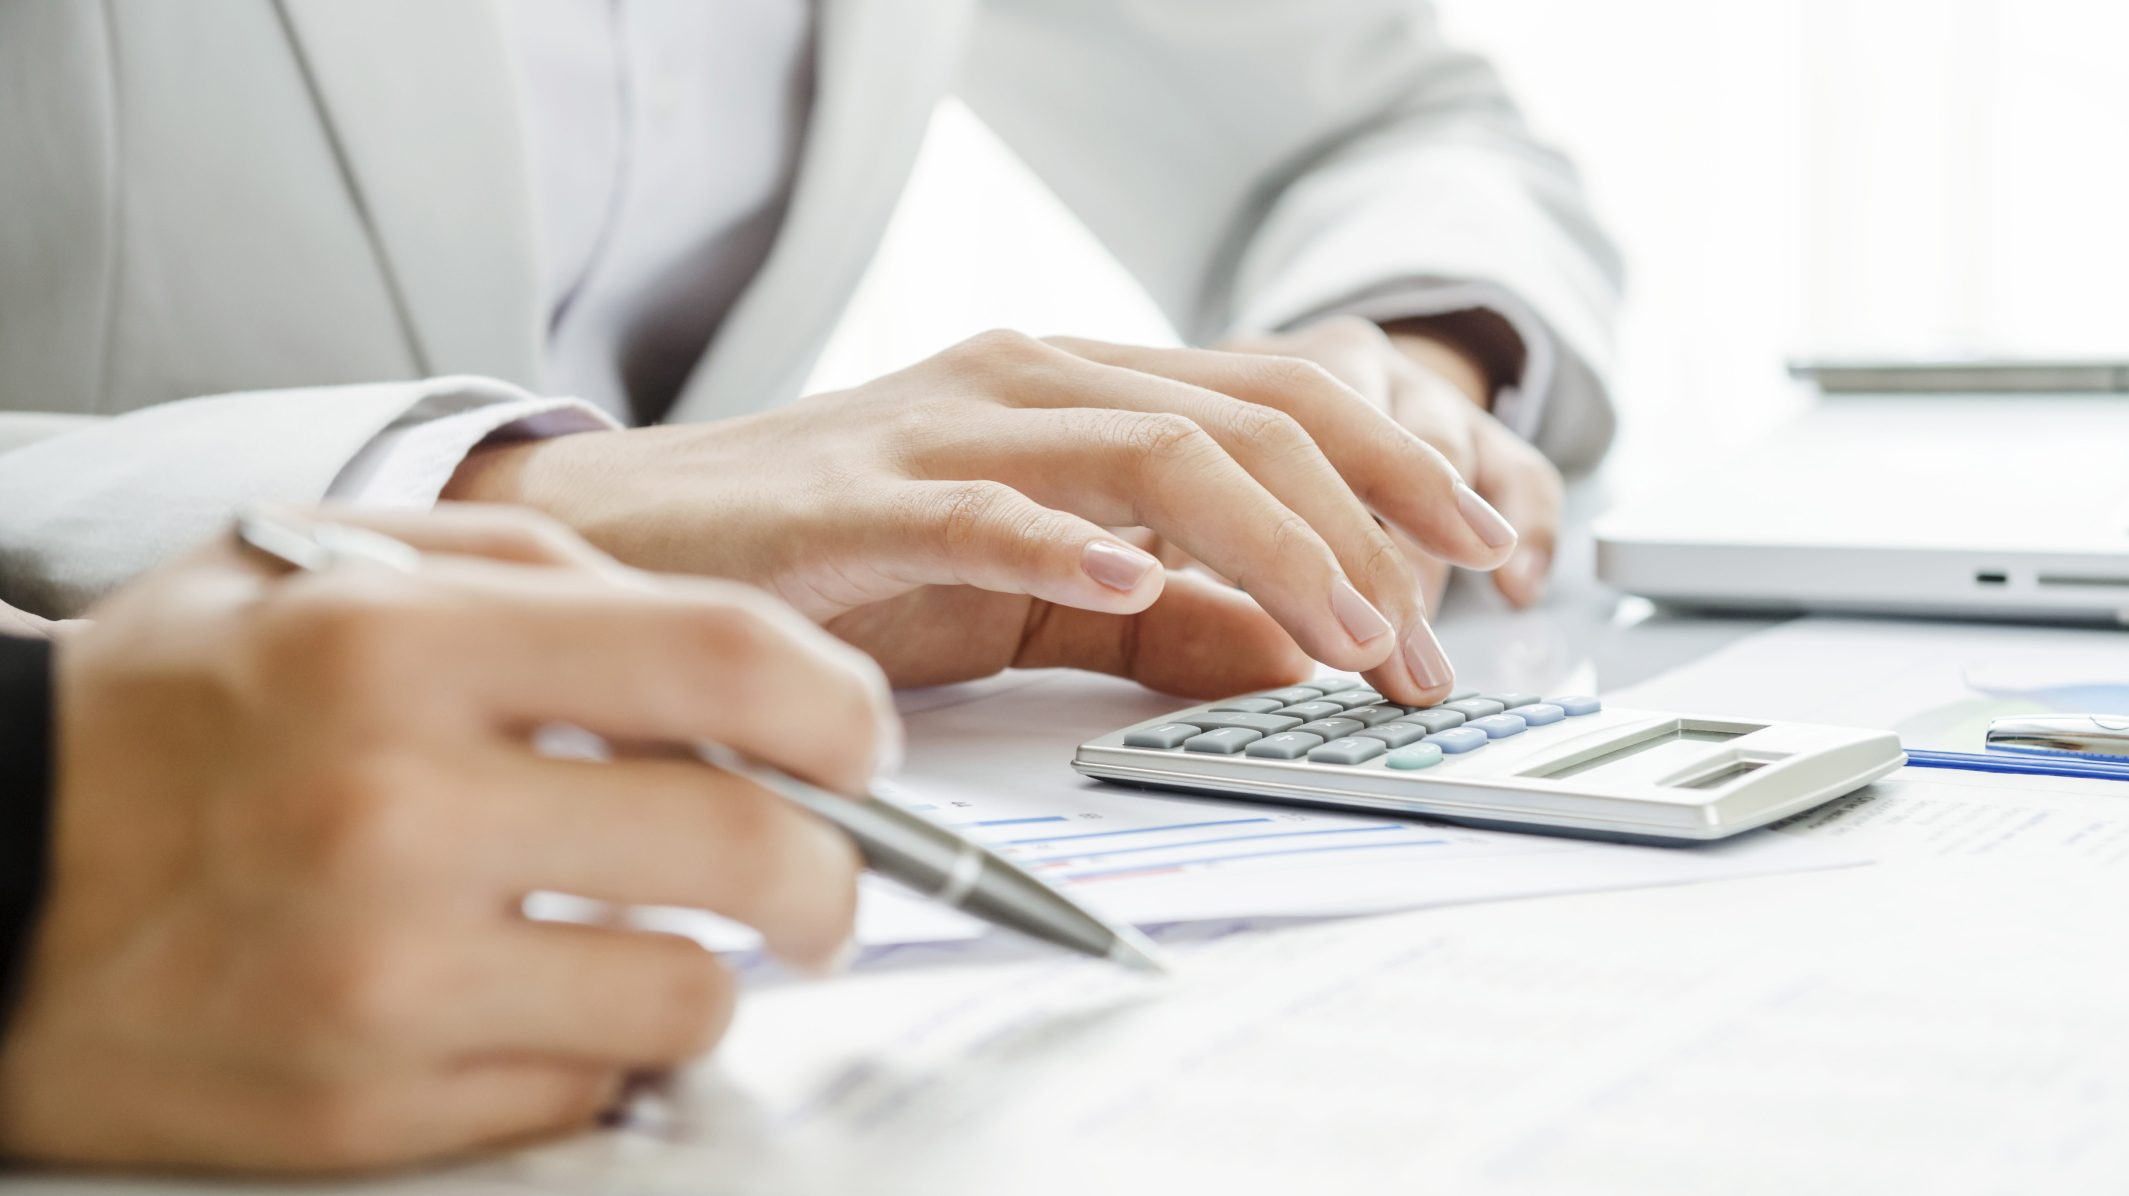 How to Make Filing Tax Returns Easy